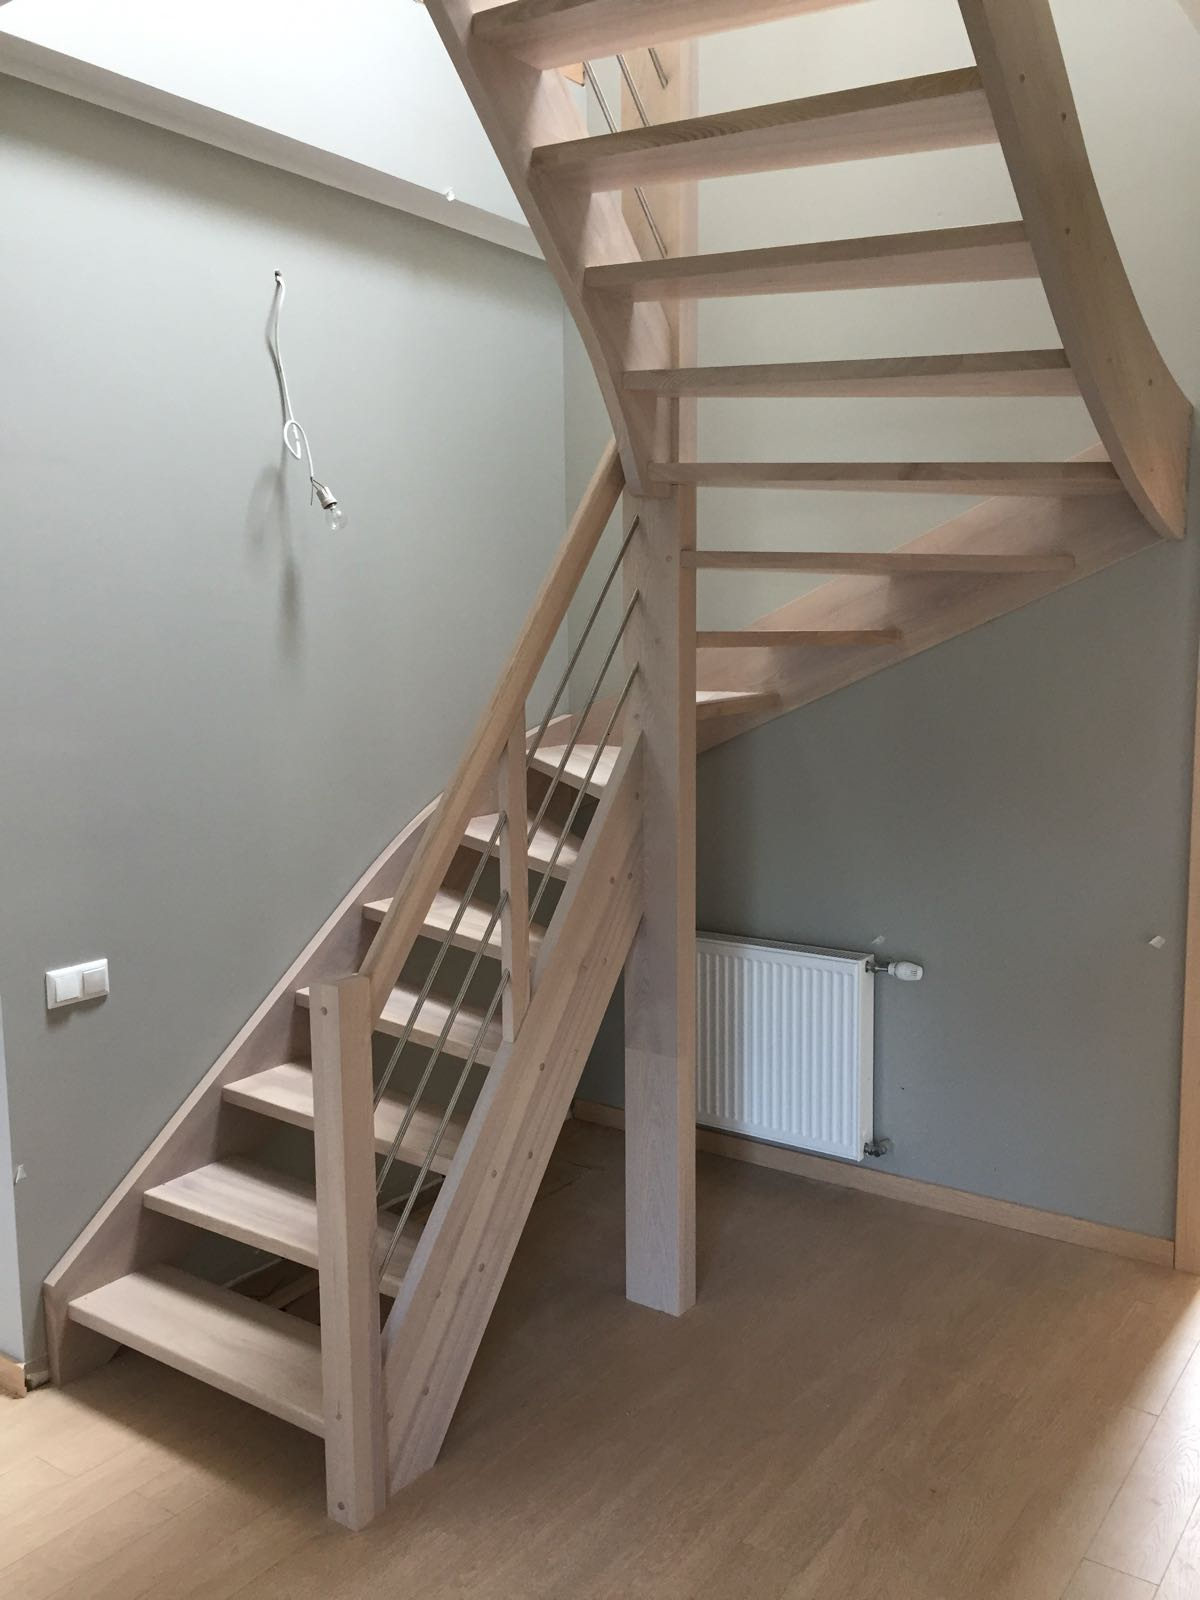 Incroyable Ready Made Stairs Photos Freezer And Stair Iyashix